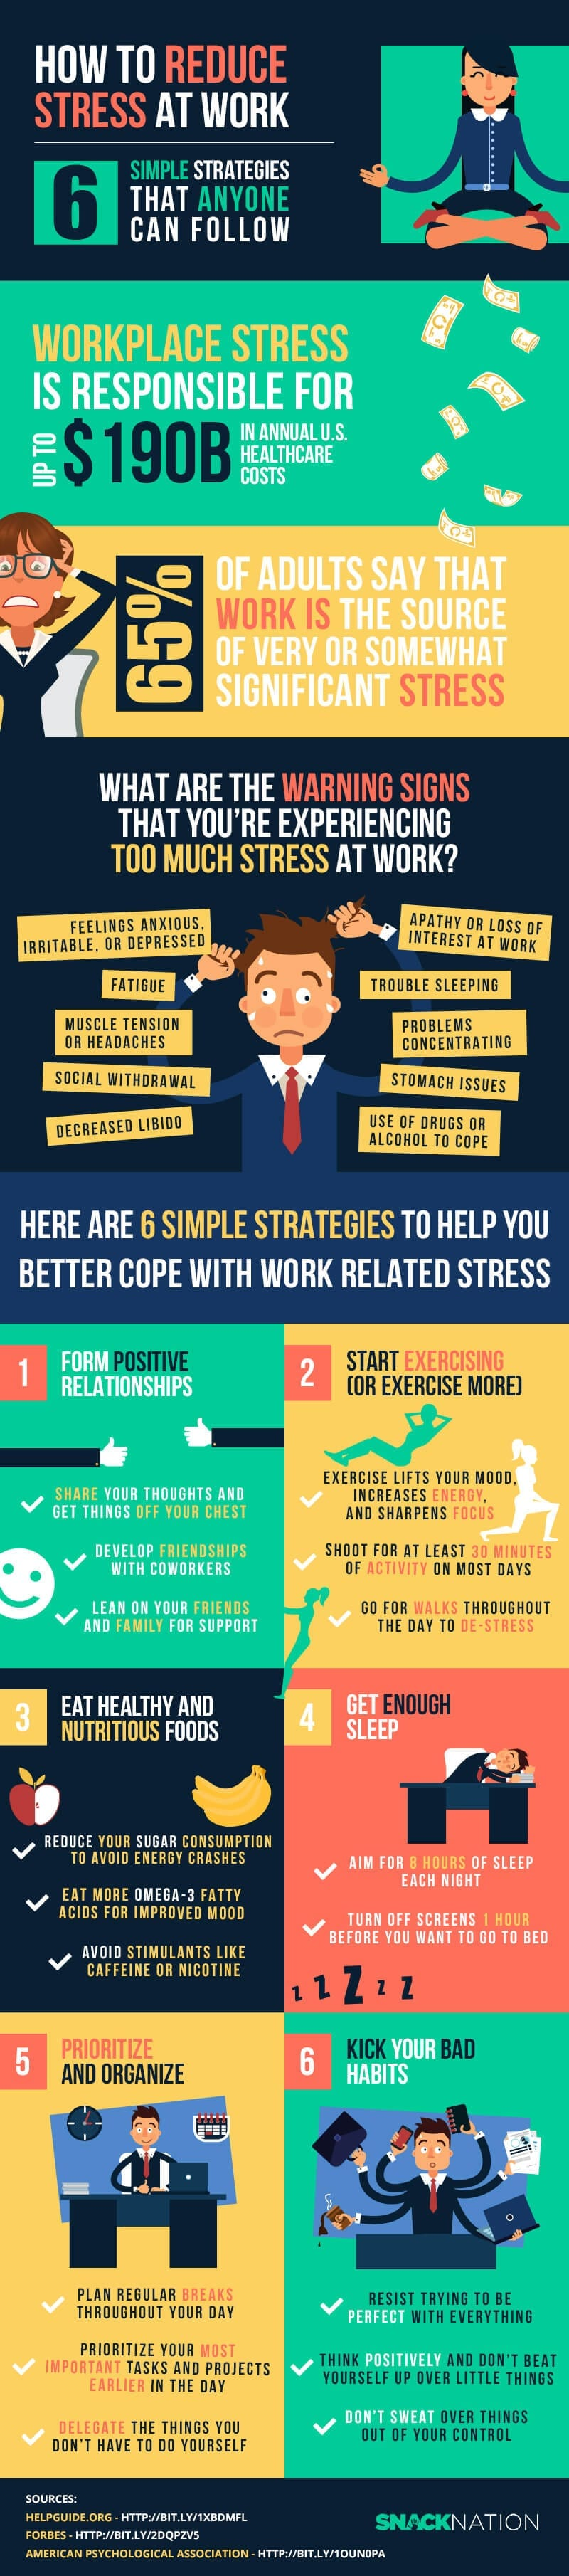 how to reduce stress at work infographic